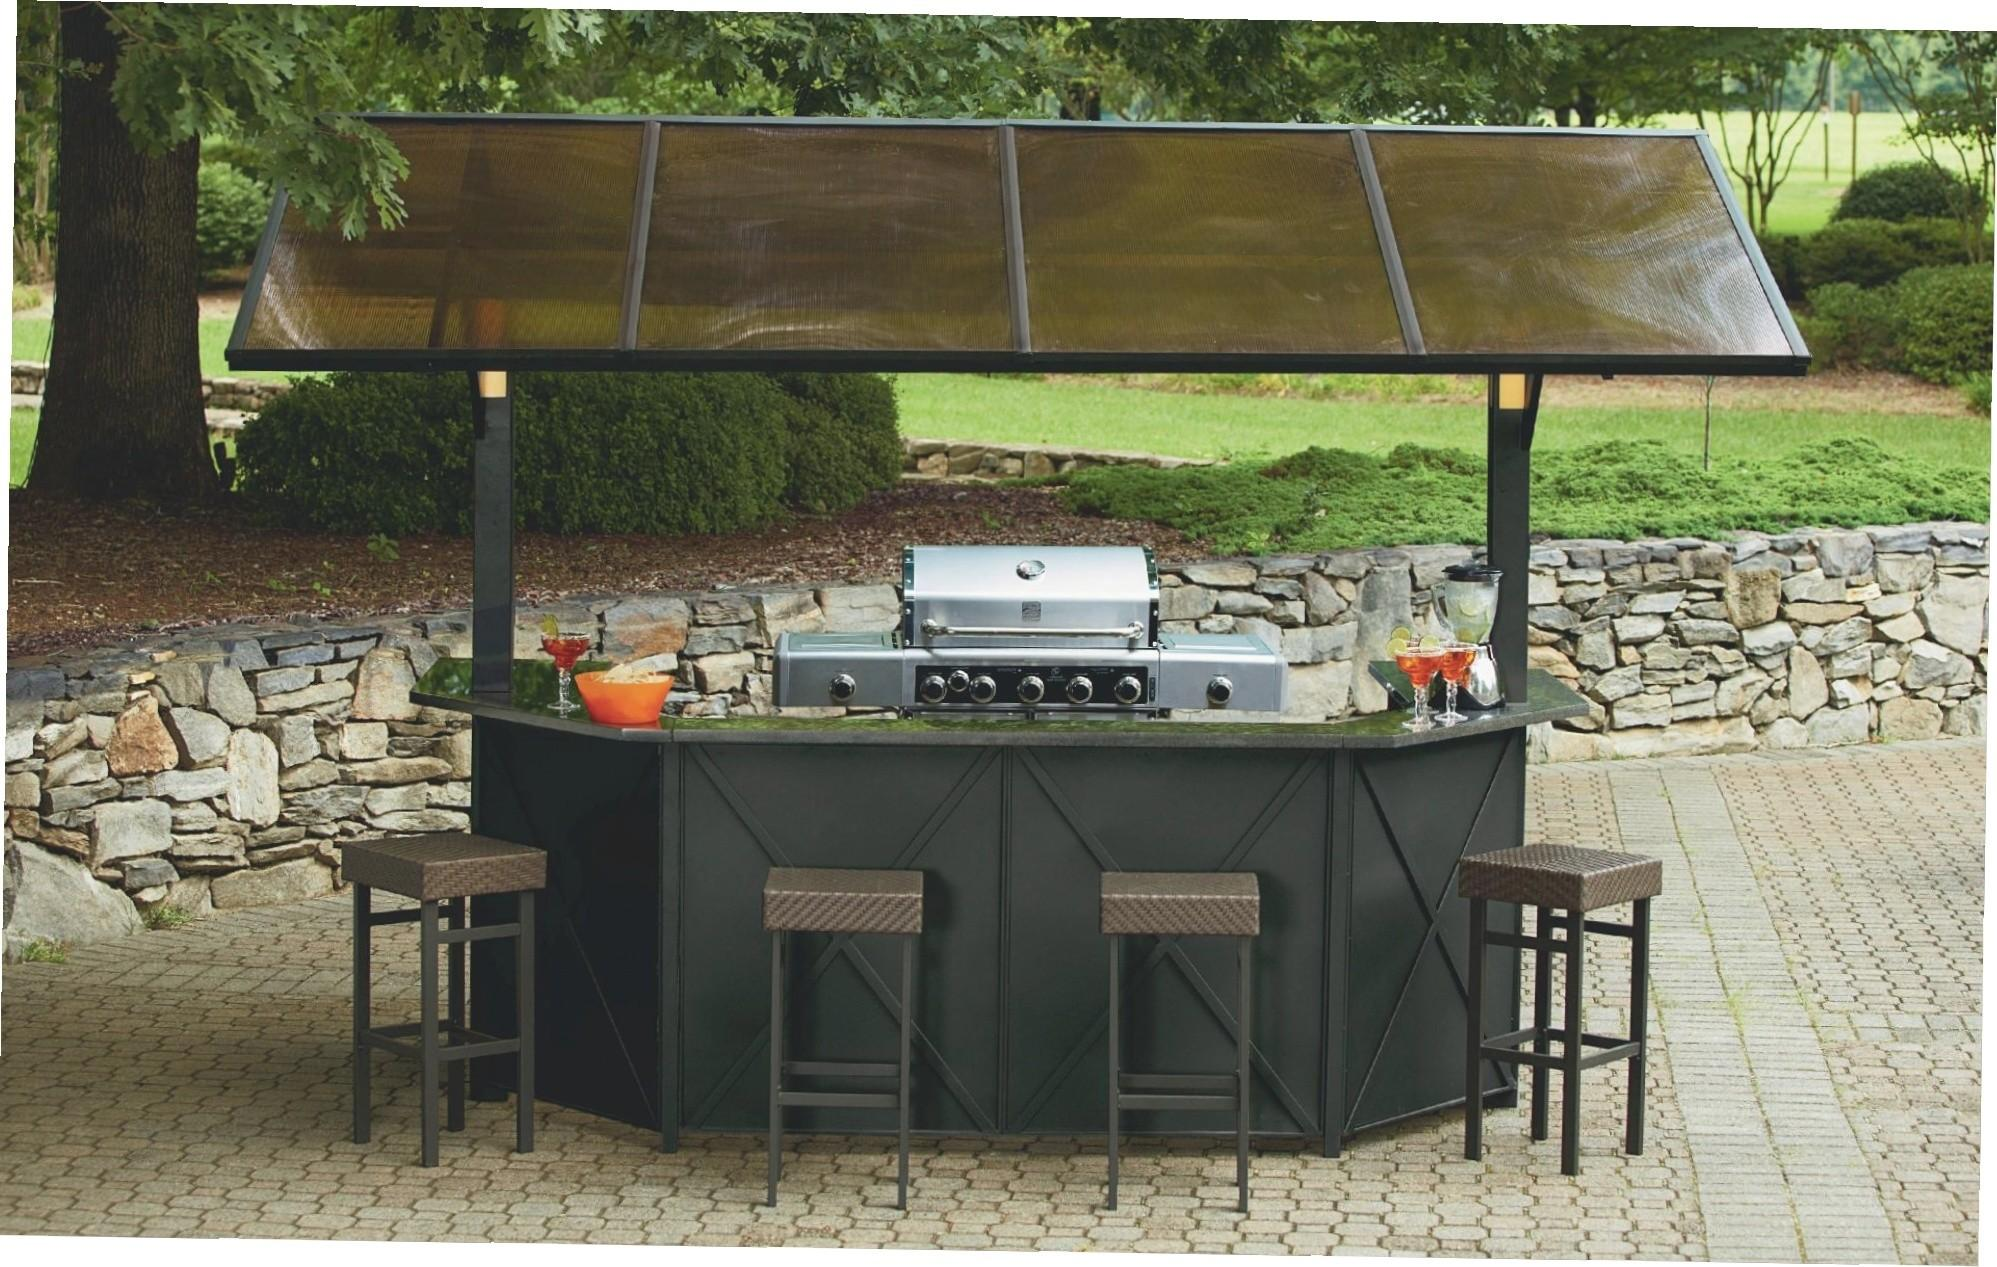 Grill Gazebo Sams Club Ideas